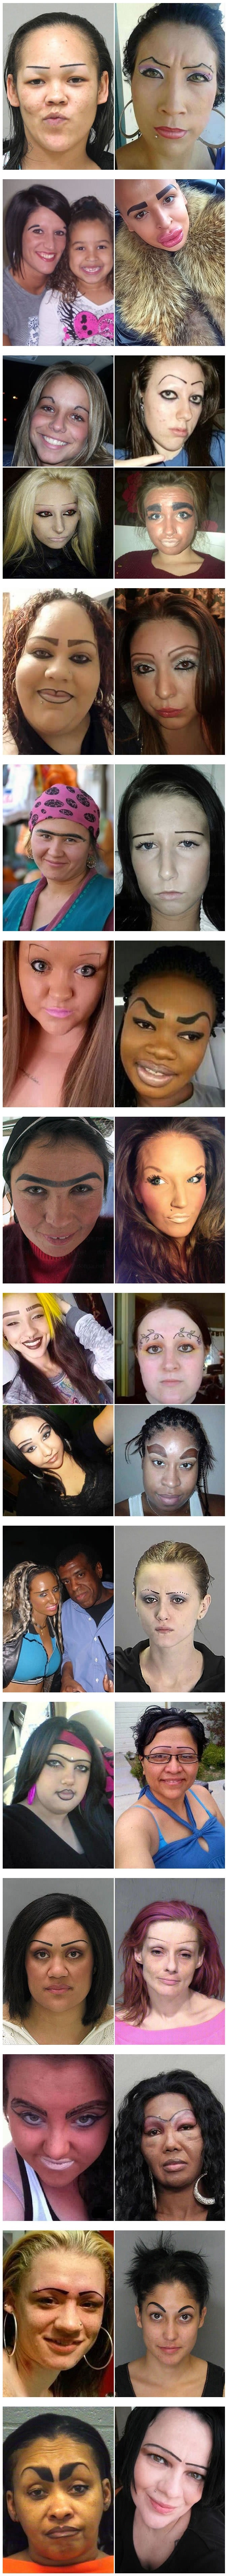 Eyebrows that should've never happened